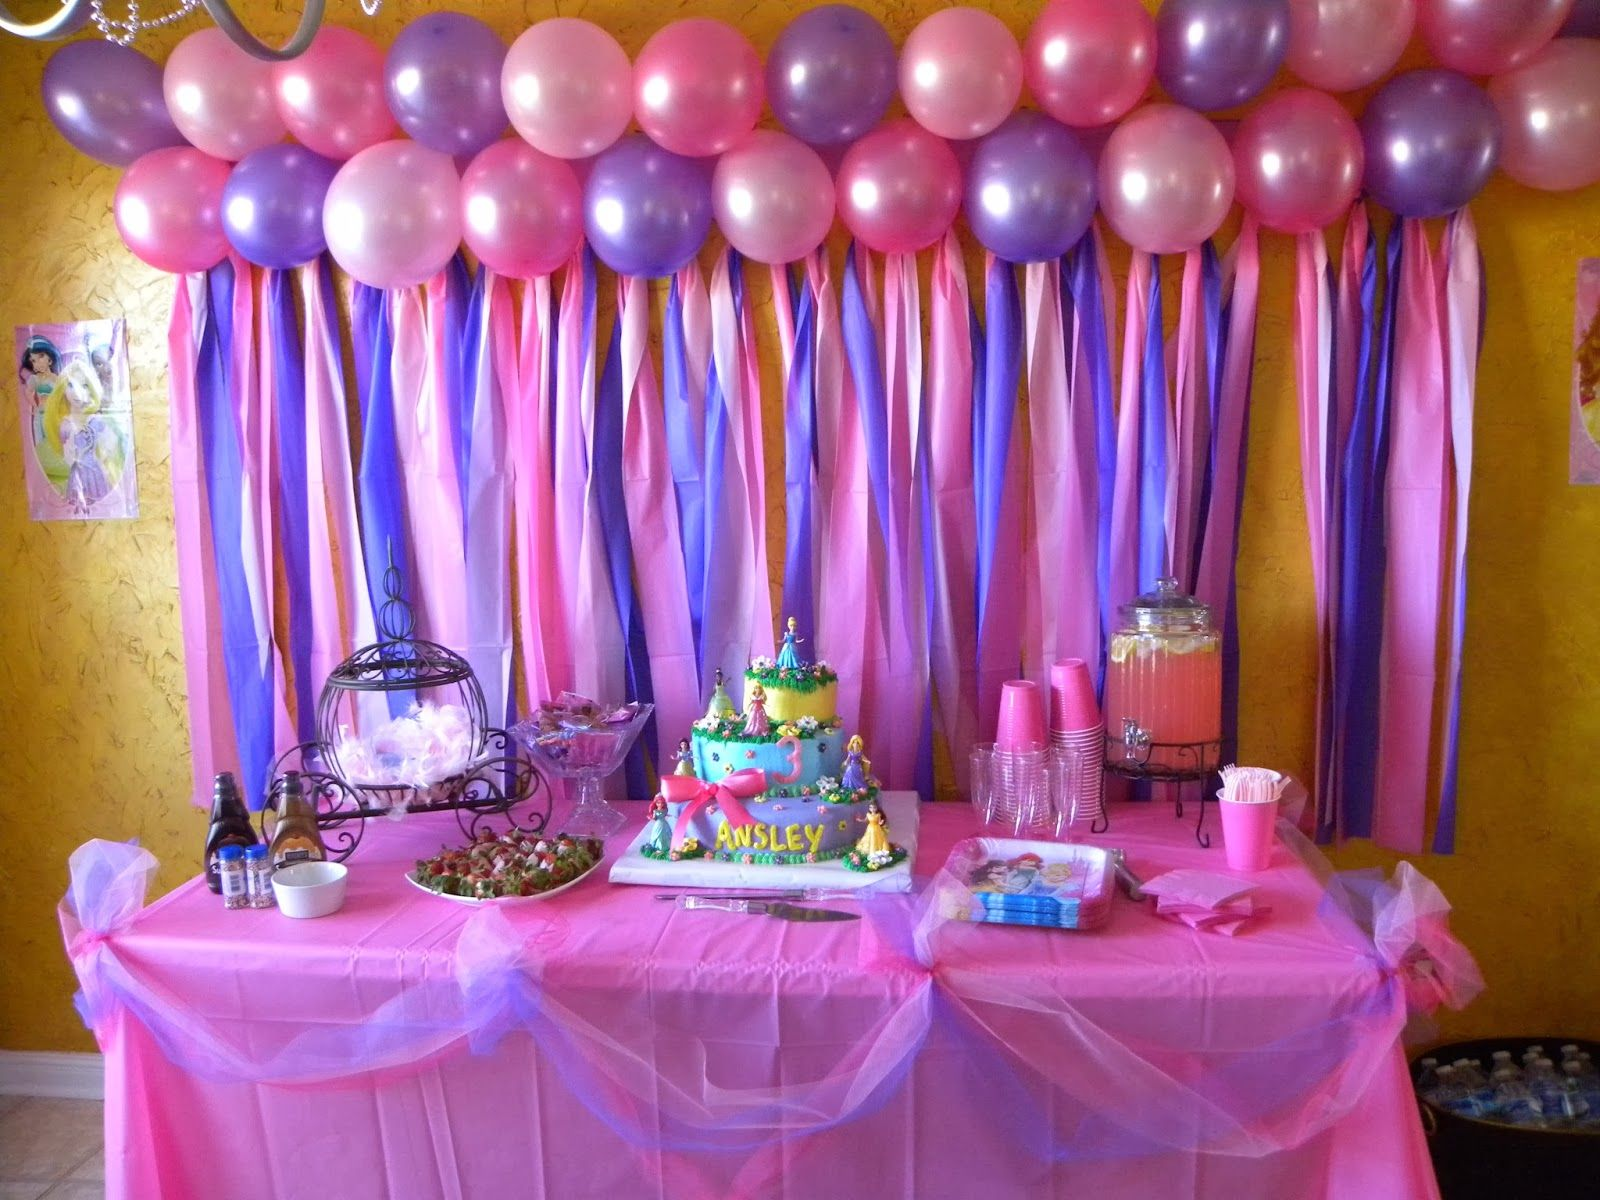 Disney Princess Birthday. Cake table Ansley s 3rd ...